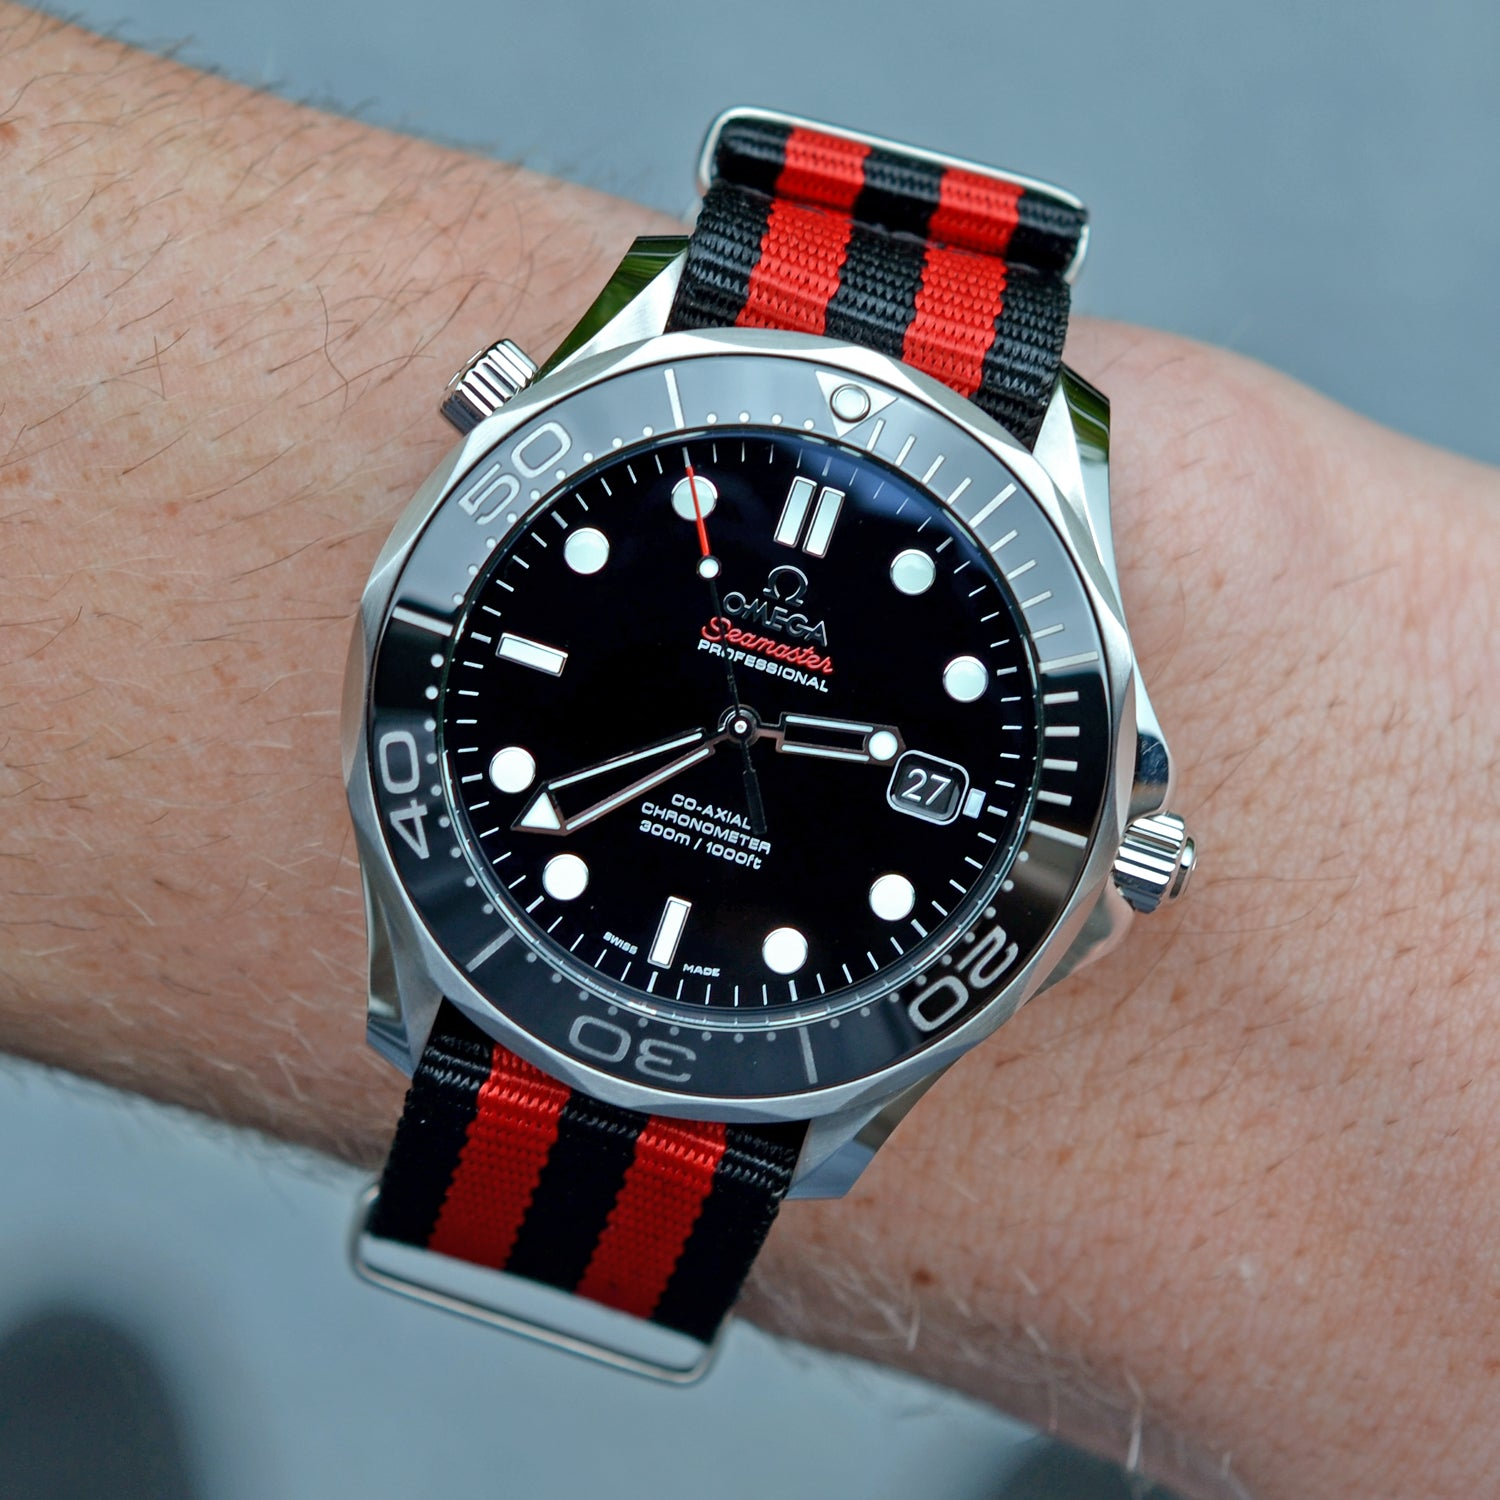 The NATO G10 Watch Strap - Where did it come from?